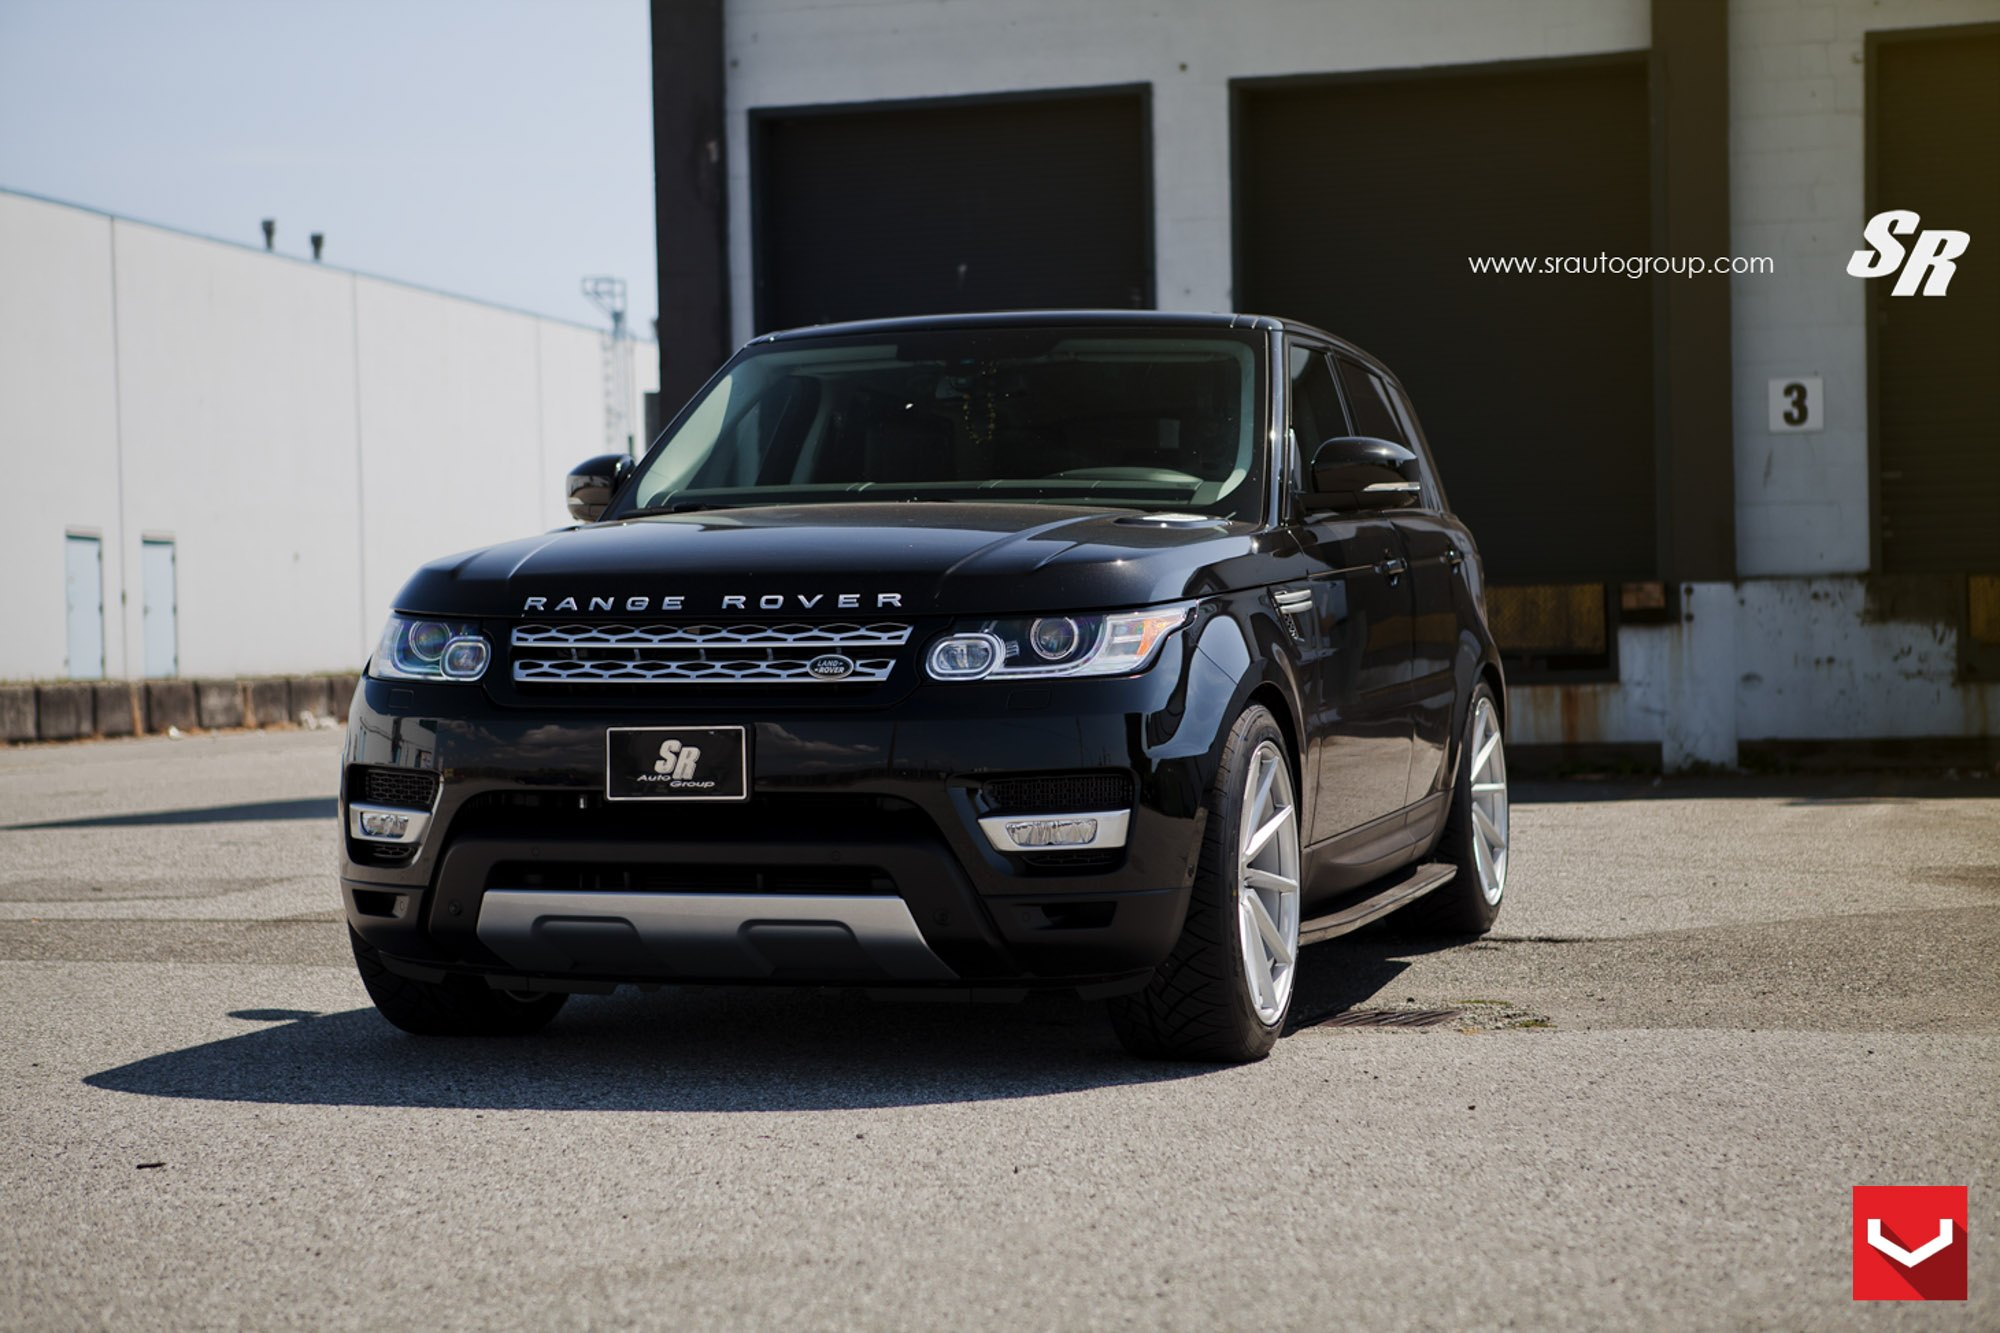 Spruced Up Gloss Black Land Rover Range Rover Sport — CARiD